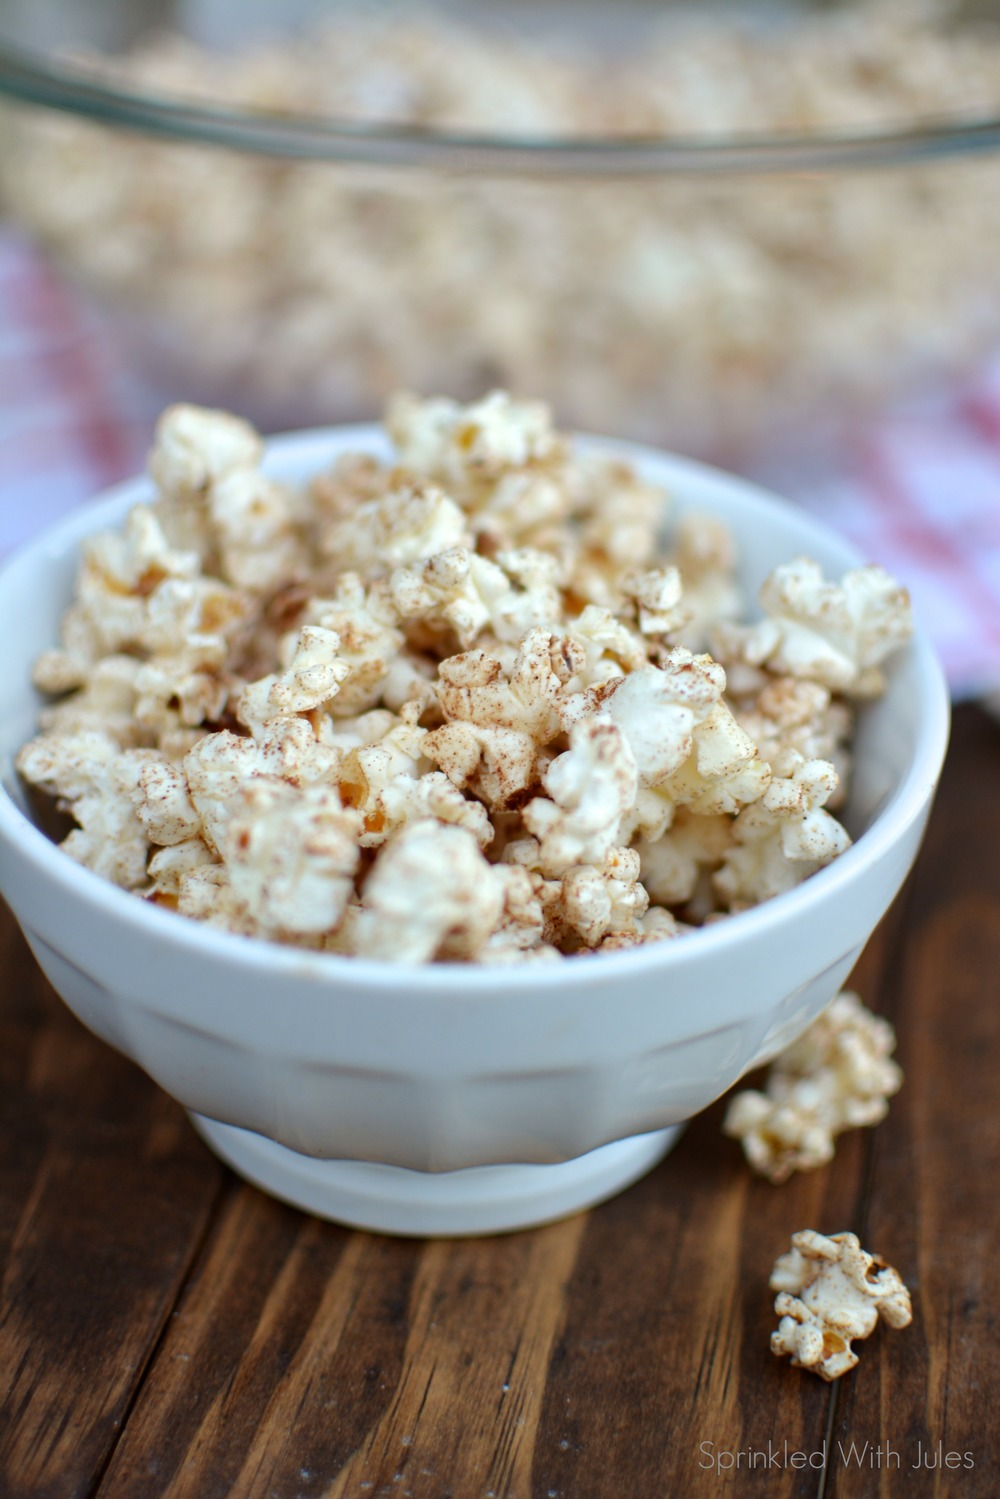 Chinese Five Spice Popcorn / Sprinkled With Jules